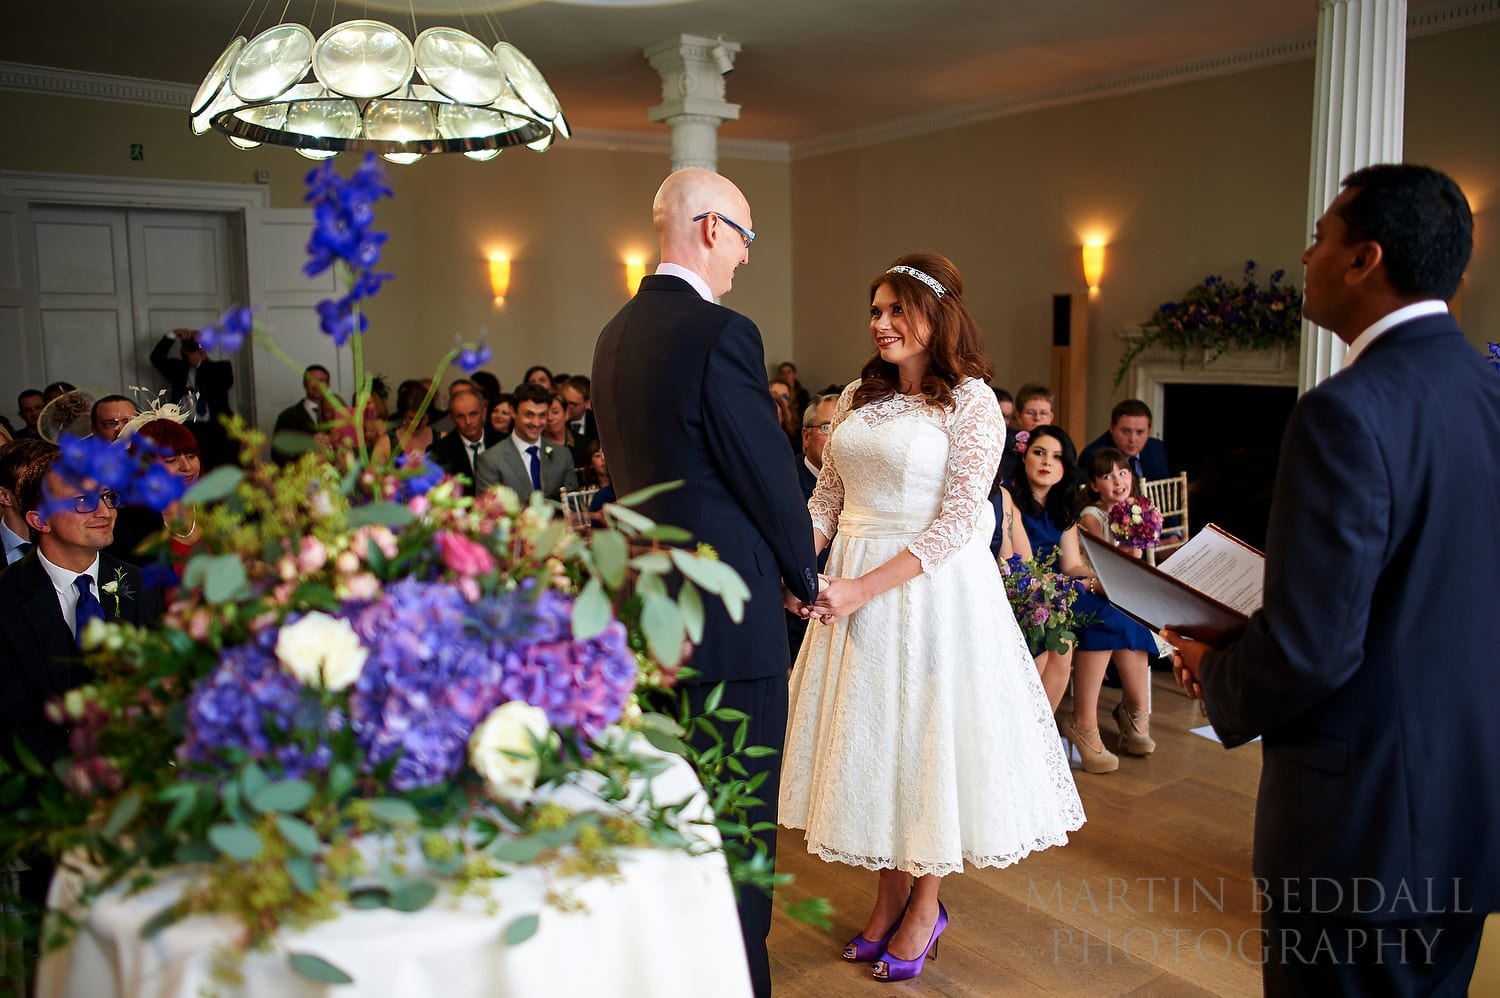 Royal Society of Arts wedding ceremony in London